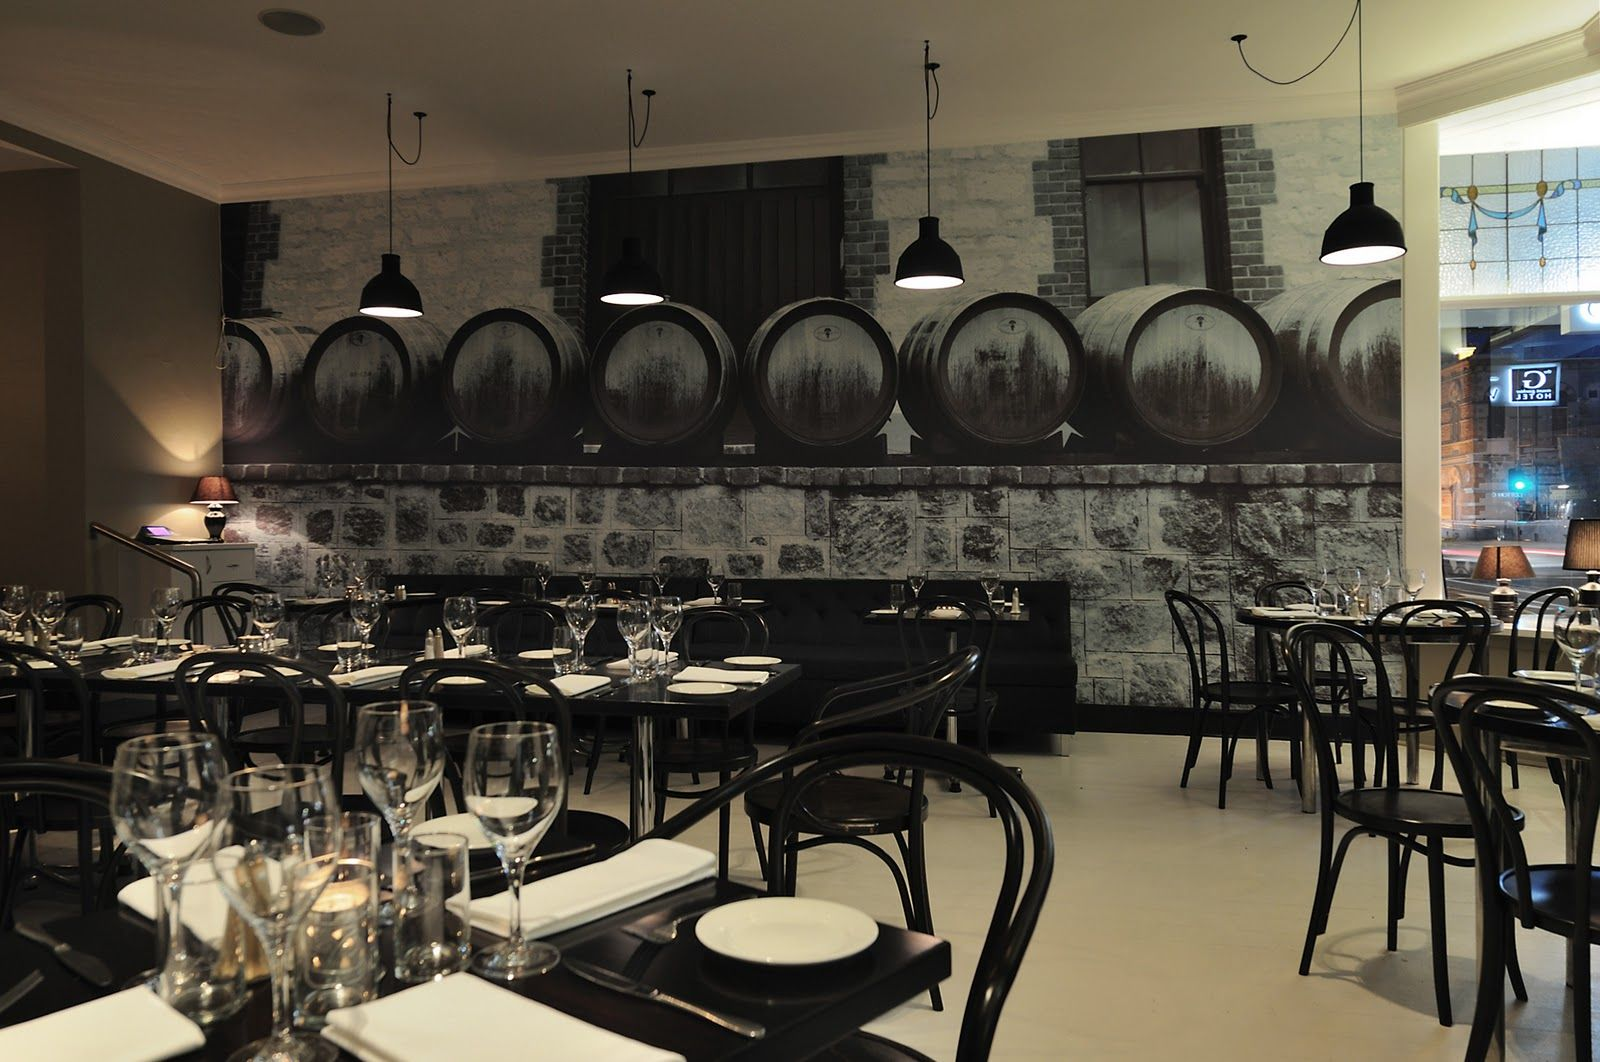 Charmant 1862 Wine Bar U0026 Grill By Samantha Agostino, Mount Gambier Australia Store Design  Bar And Restaurant